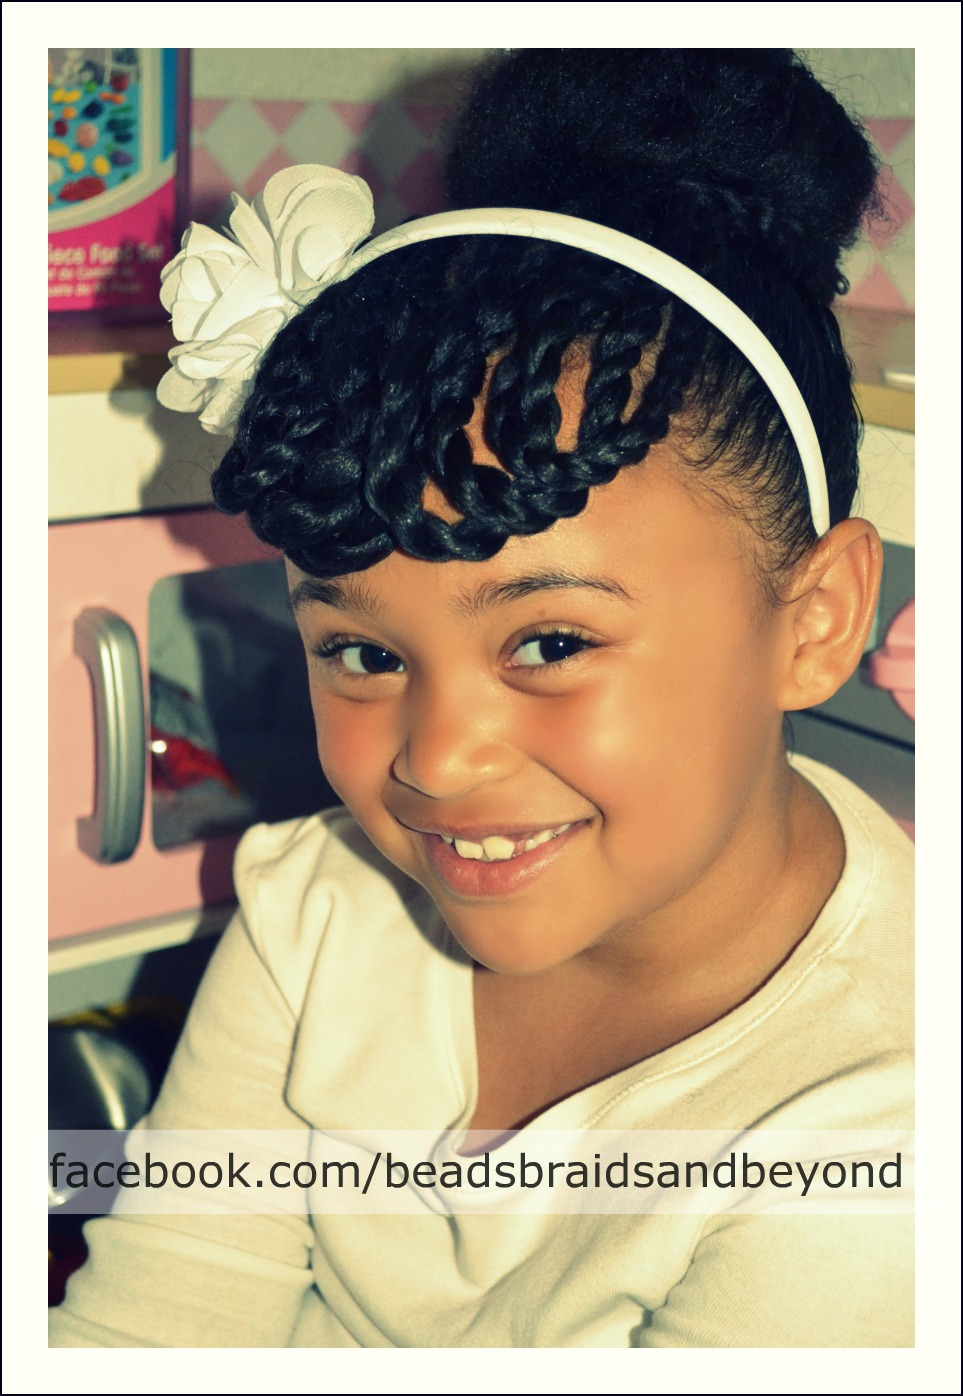 Swell Beads Braids And Beyond How To Create Short Bangs On Long Short Hairstyles For Black Women Fulllsitofus